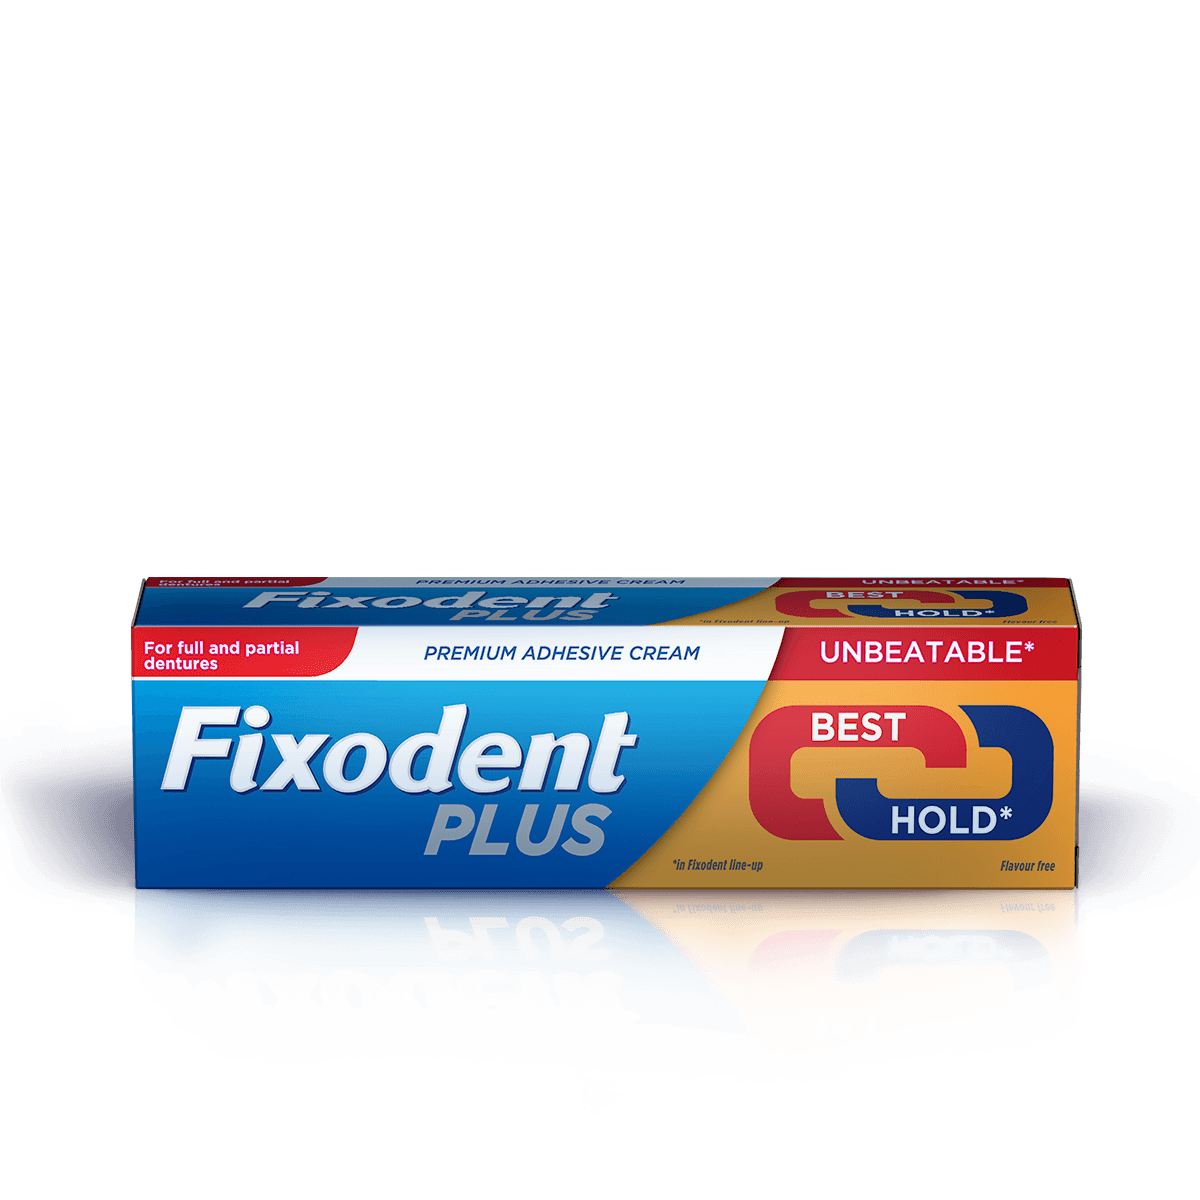 Fixodent PLUS Best Hold - Fixodent